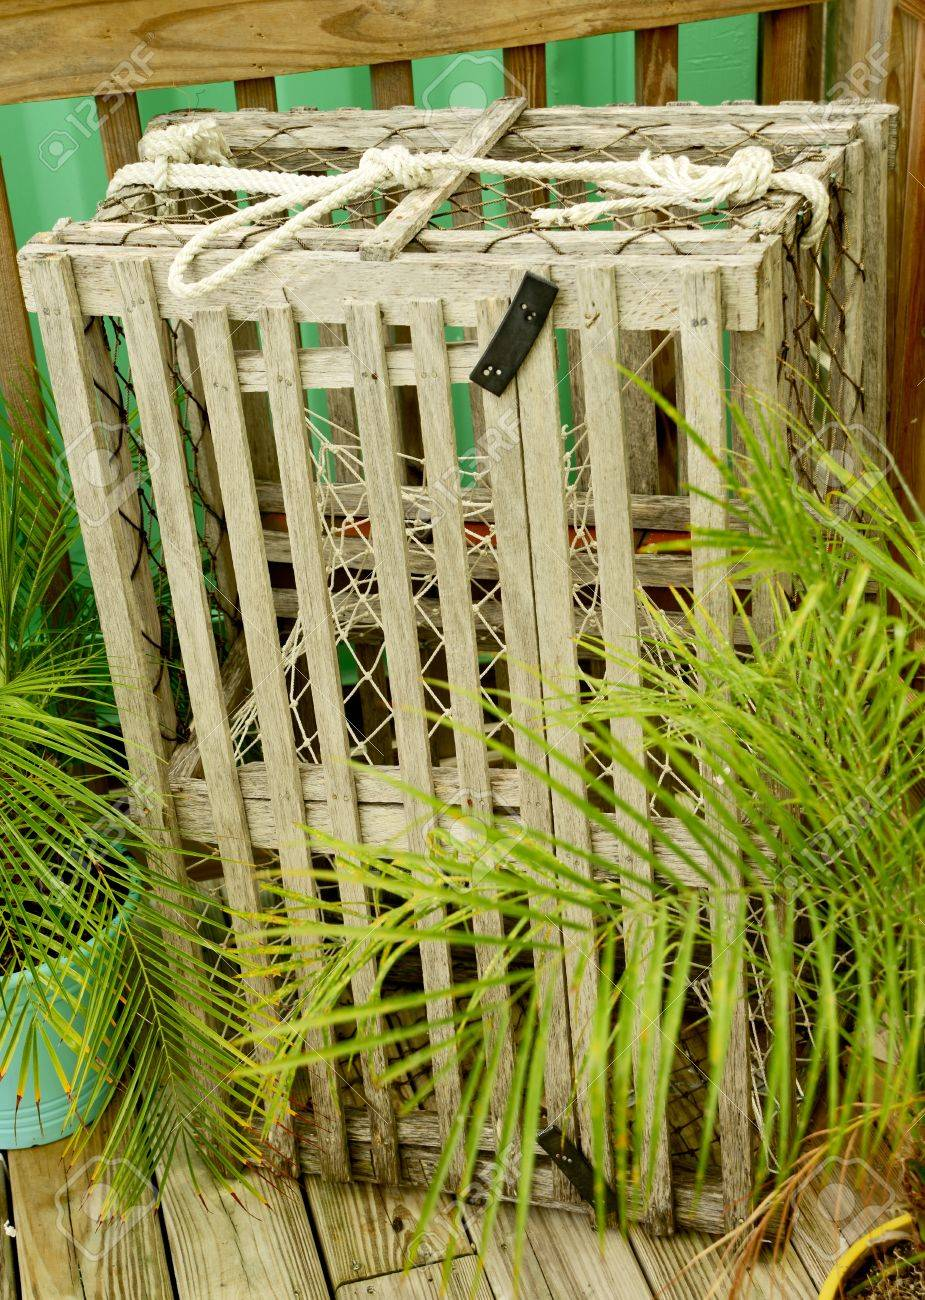 Wooden Commercial Lobster Or Crab Trap In Florida